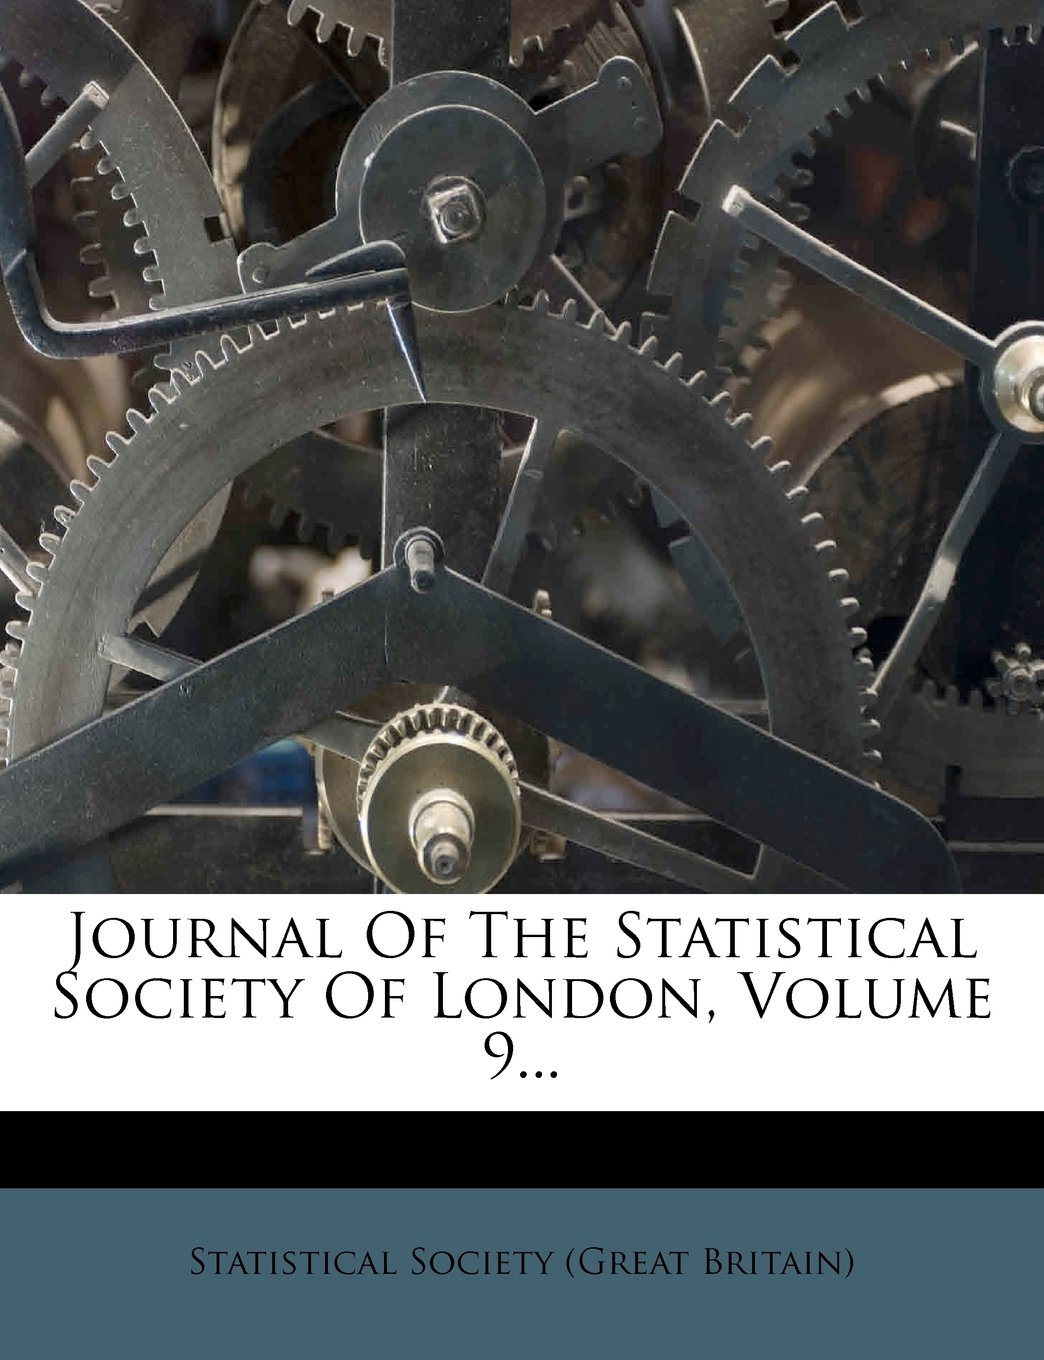 Journal of the Statistical Society of London, Volume 9... PDF